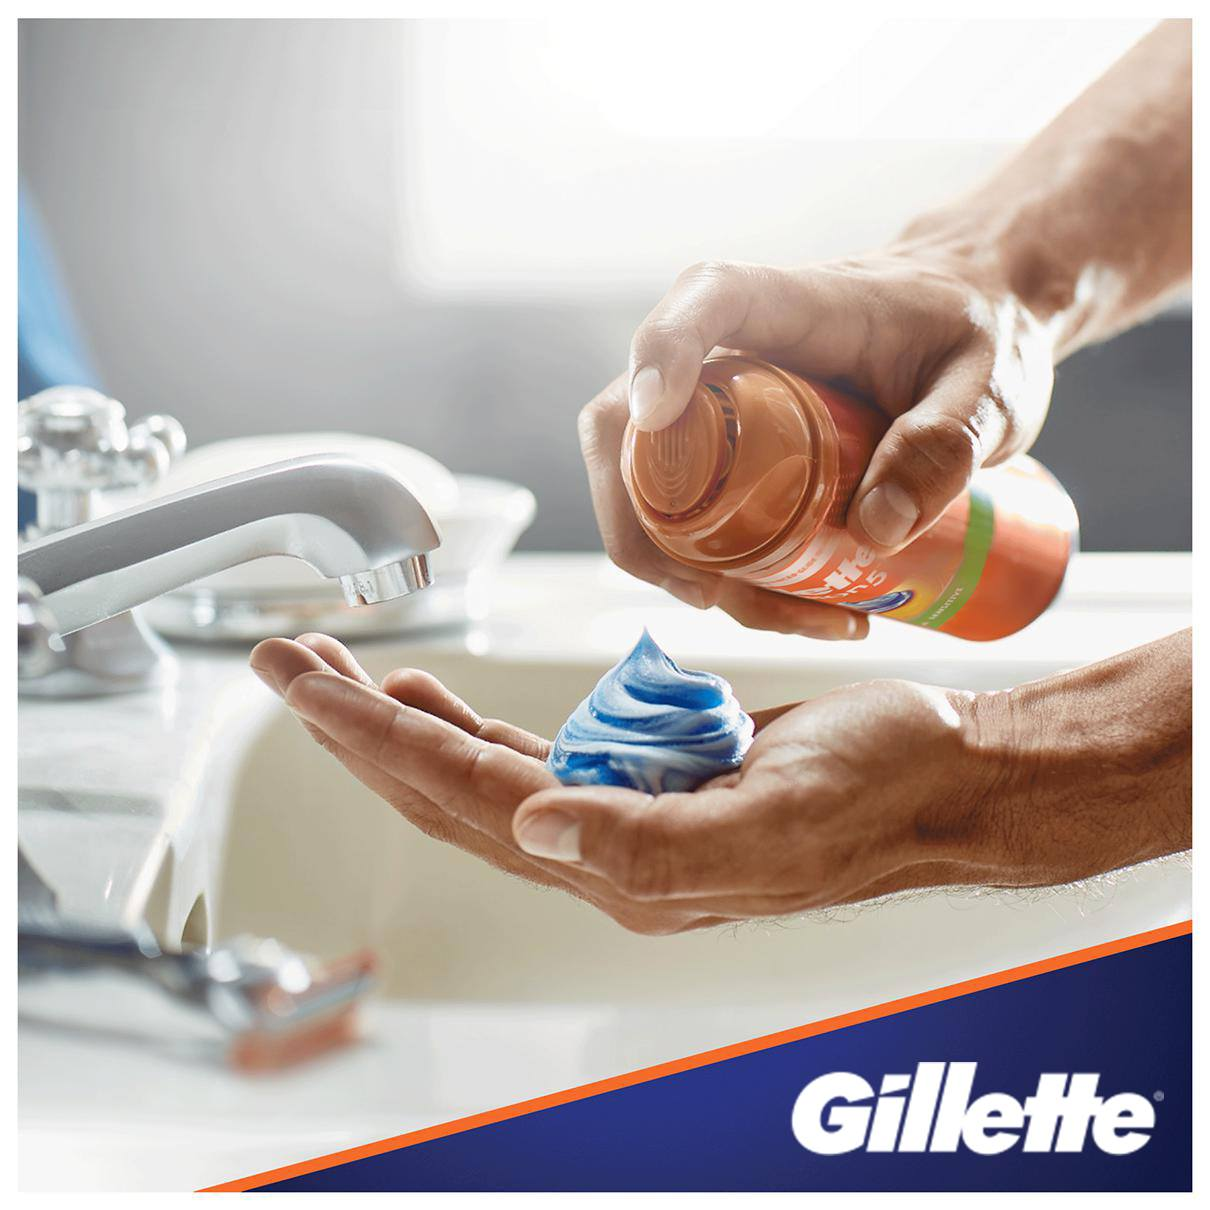 Ultra Sensitive borotvazselé I Gillette Fusion5 Ultra Sensitive borotvazselé